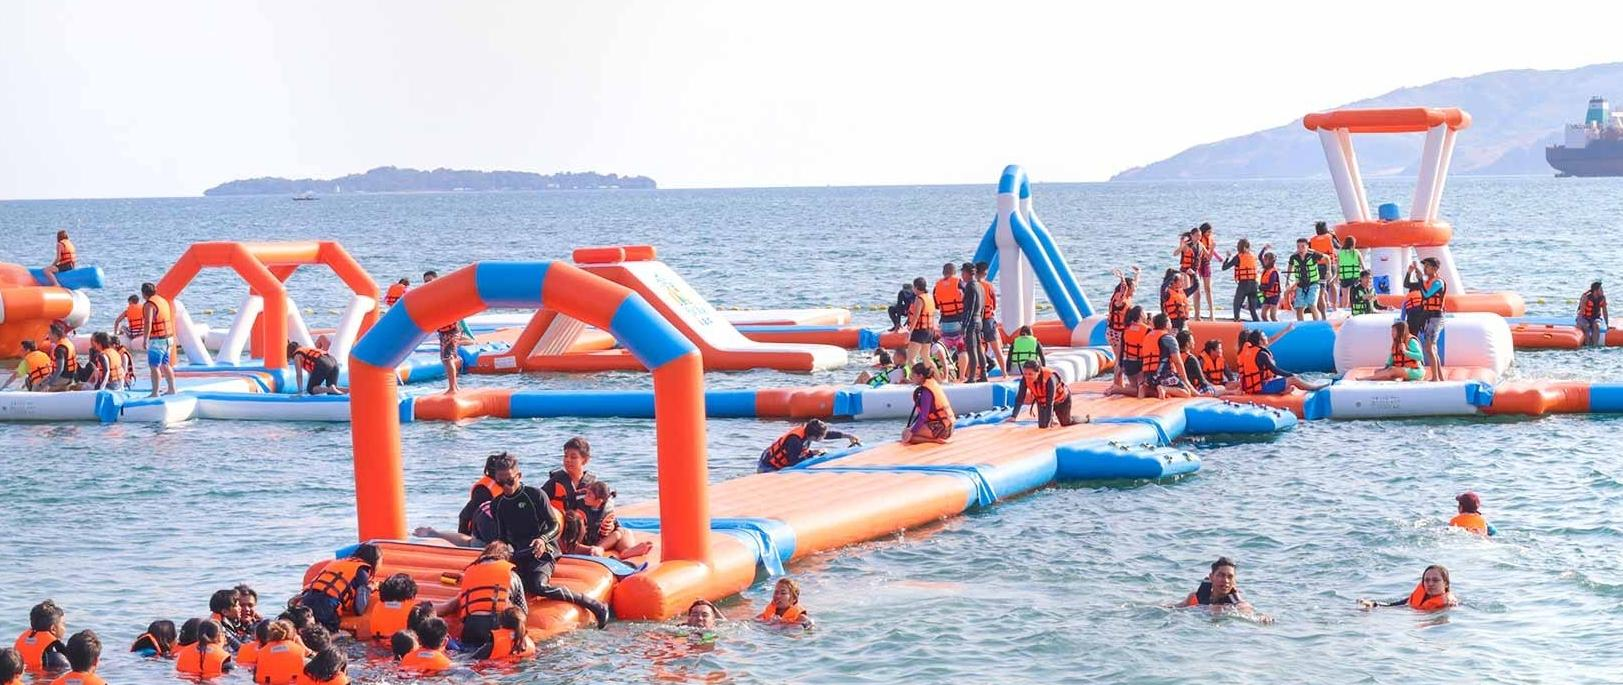 inflatable-island-biggest-floating-water-playground-subic-inflatables-3.jpg